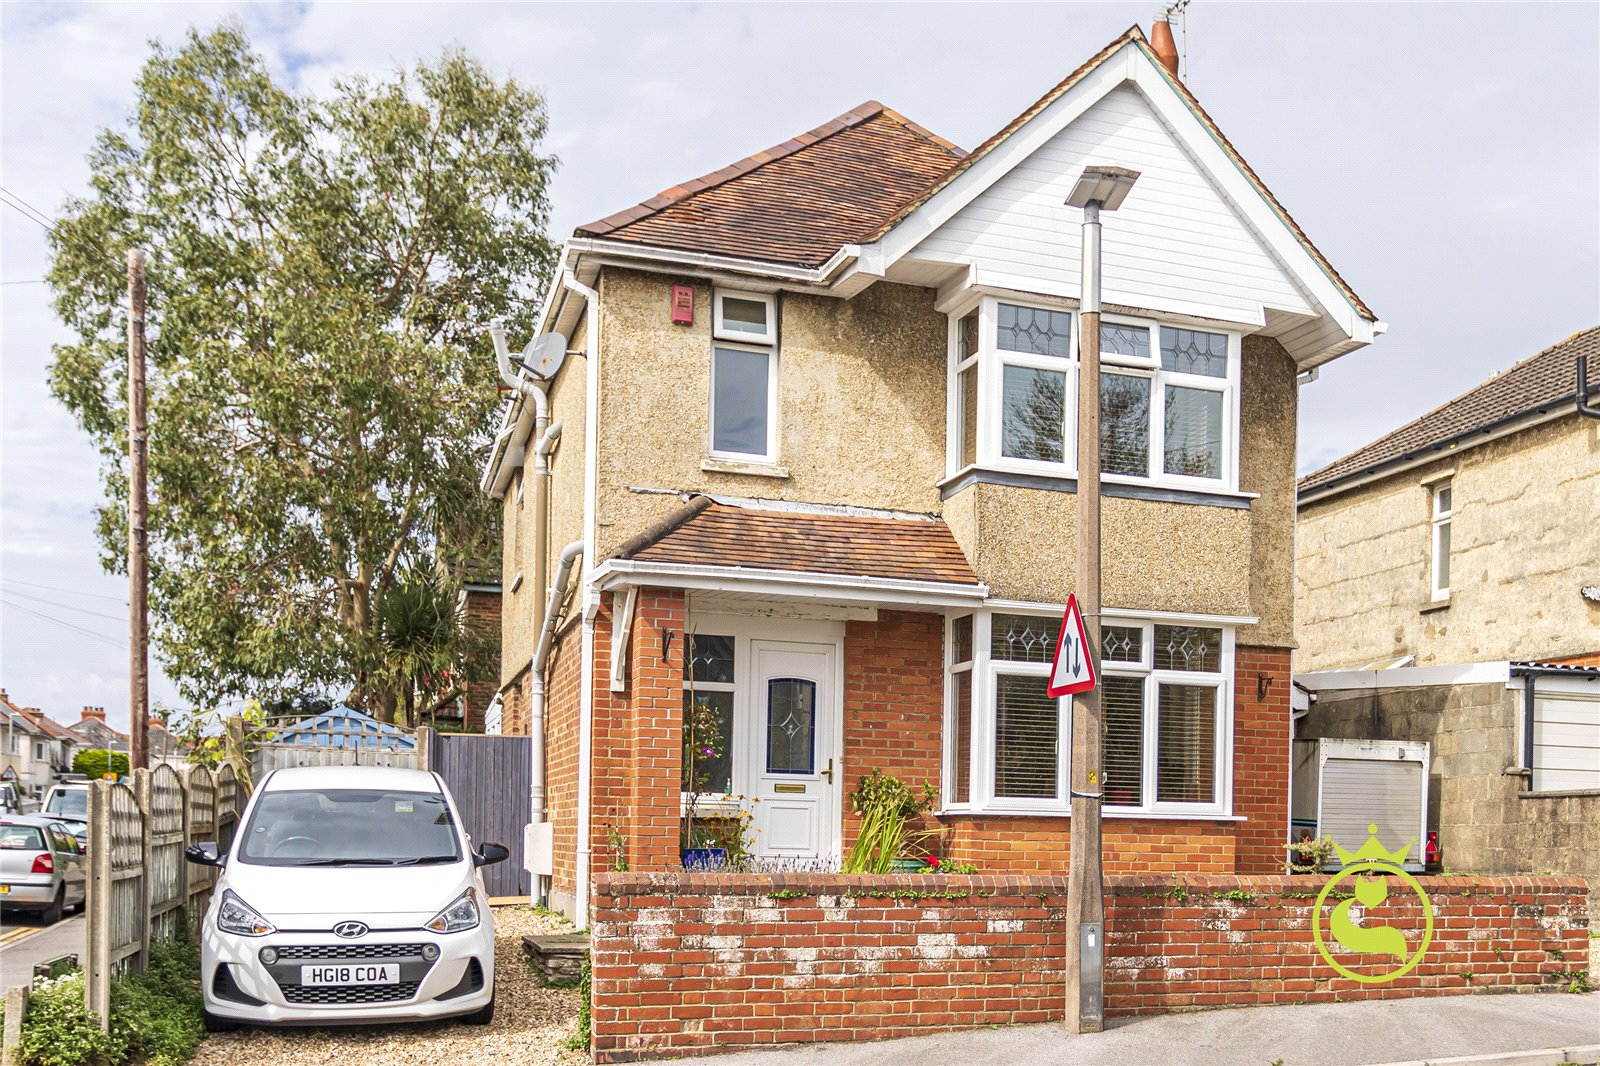 3 bed house for sale in Hardy Road, Lower Parkstone, BH14